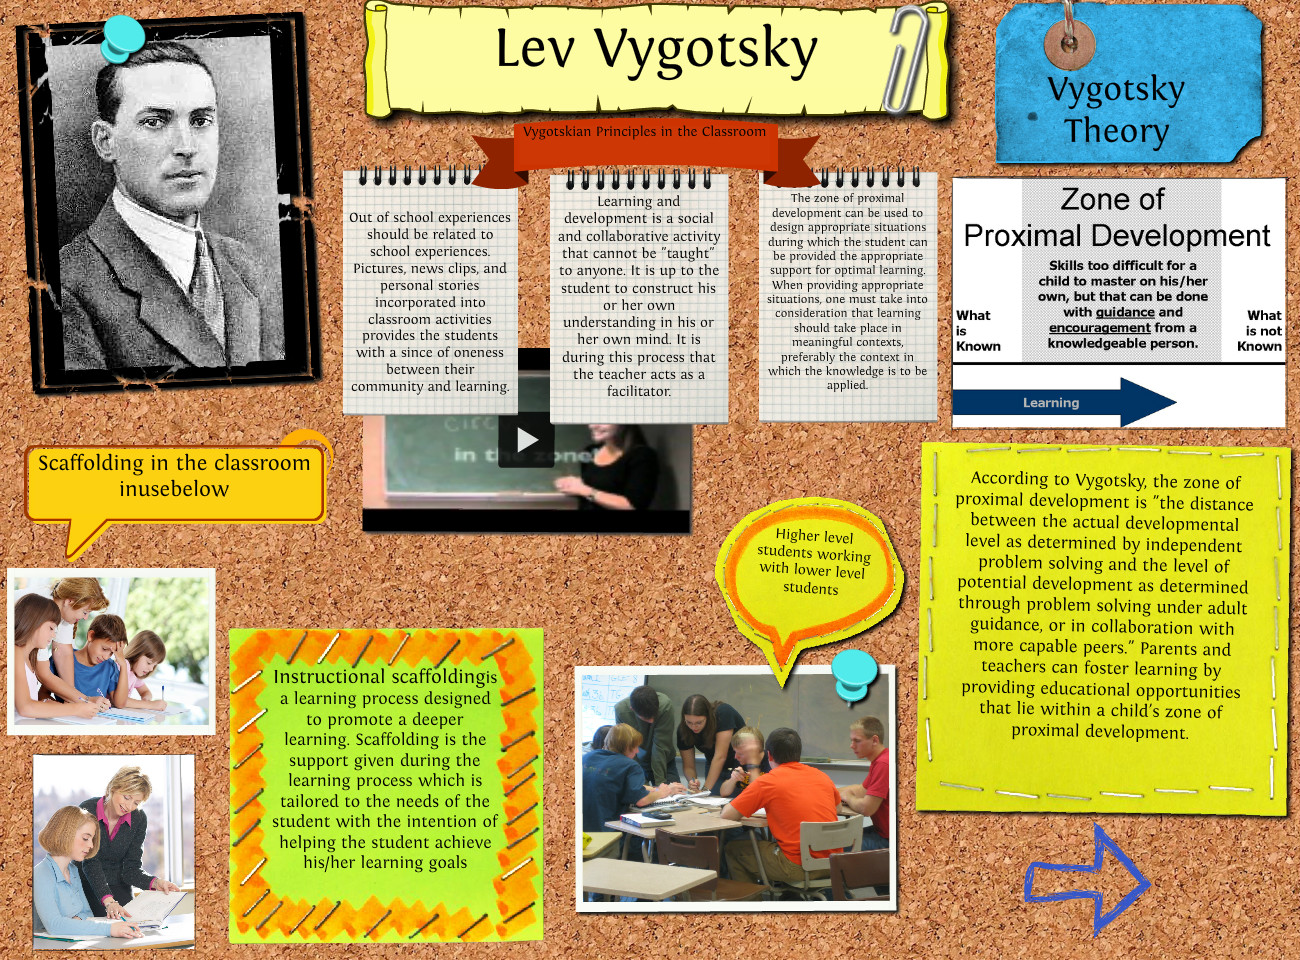 vygotsky theory In addition to defining a scientific theory we will define the word theory in english  and compare the two definitions finally, we will make a case.